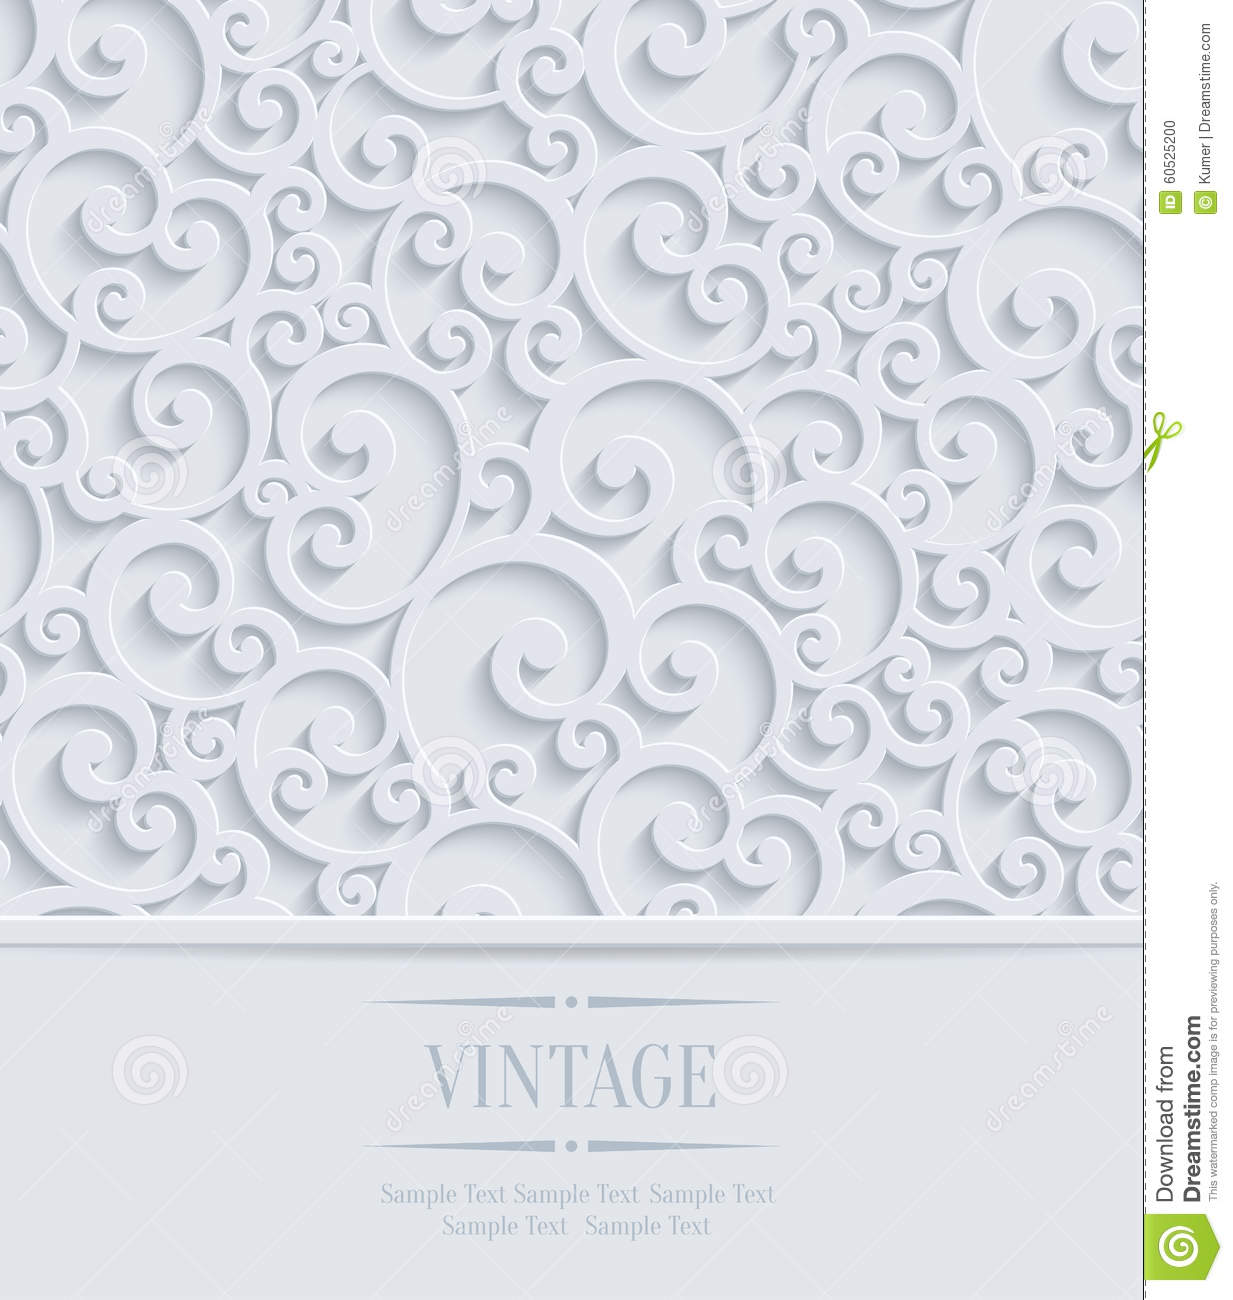 Vector 3d vintage invitation card with floral swirl pattern stock vector 3d vintage invitation card with floral swirl pattern stopboris Choice Image